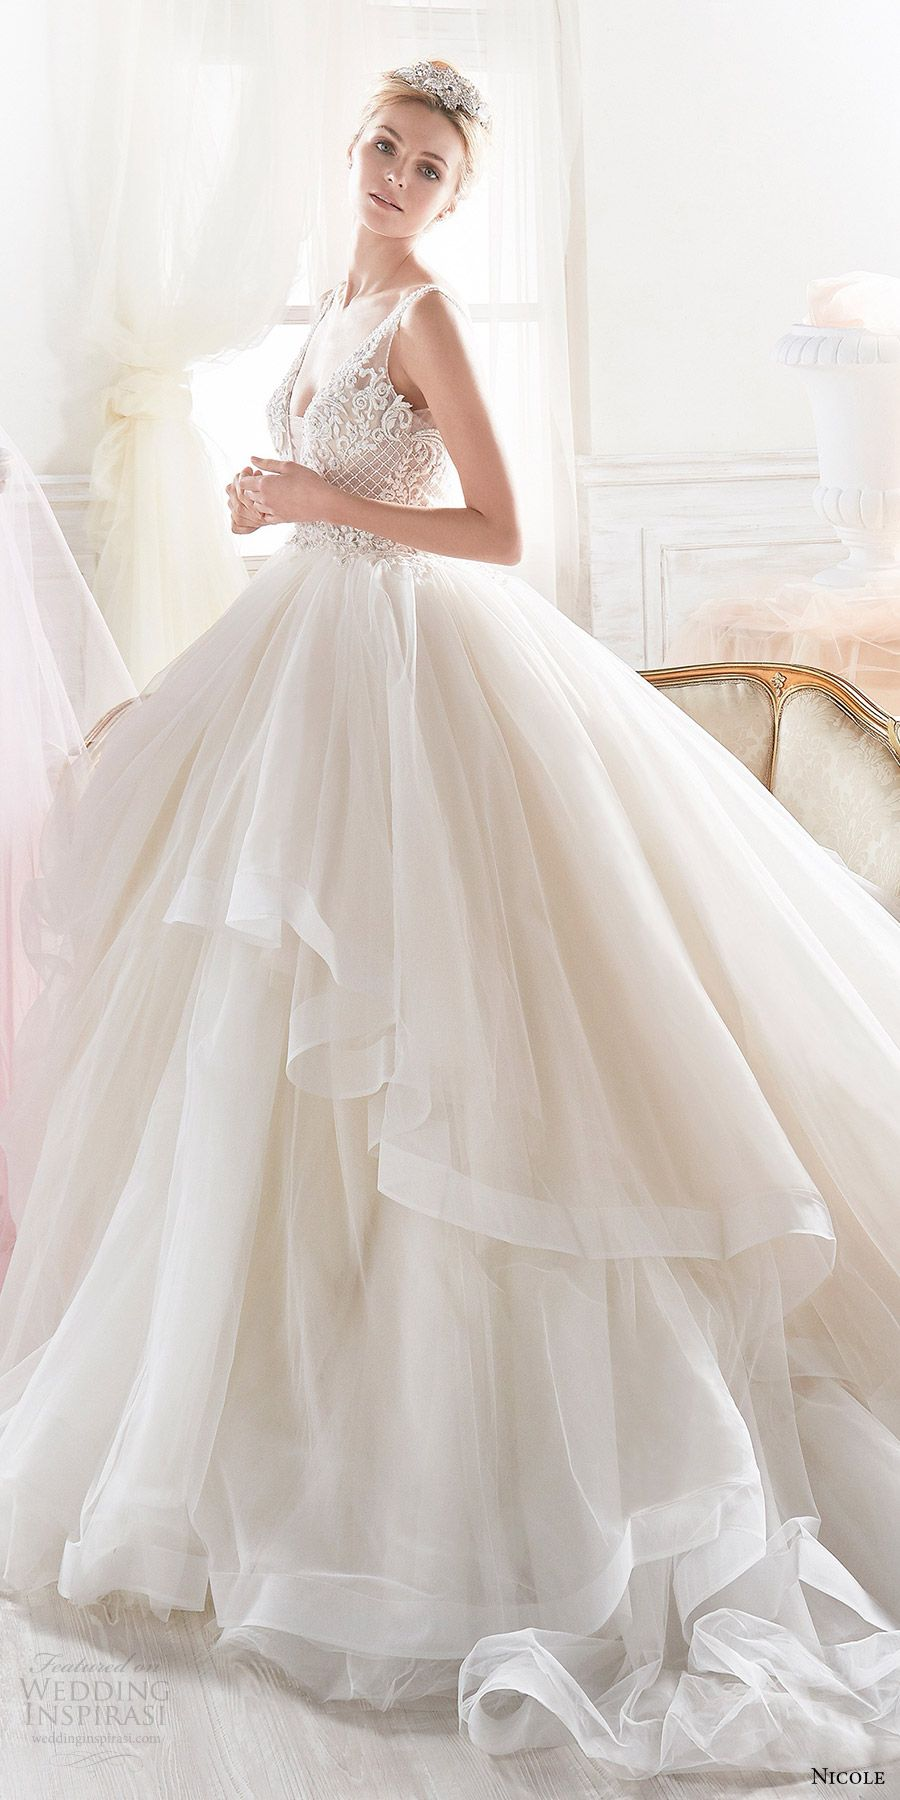 2018 Wedding Dress Trends to Love Part 1 — Silhouettes and Sleeves ...